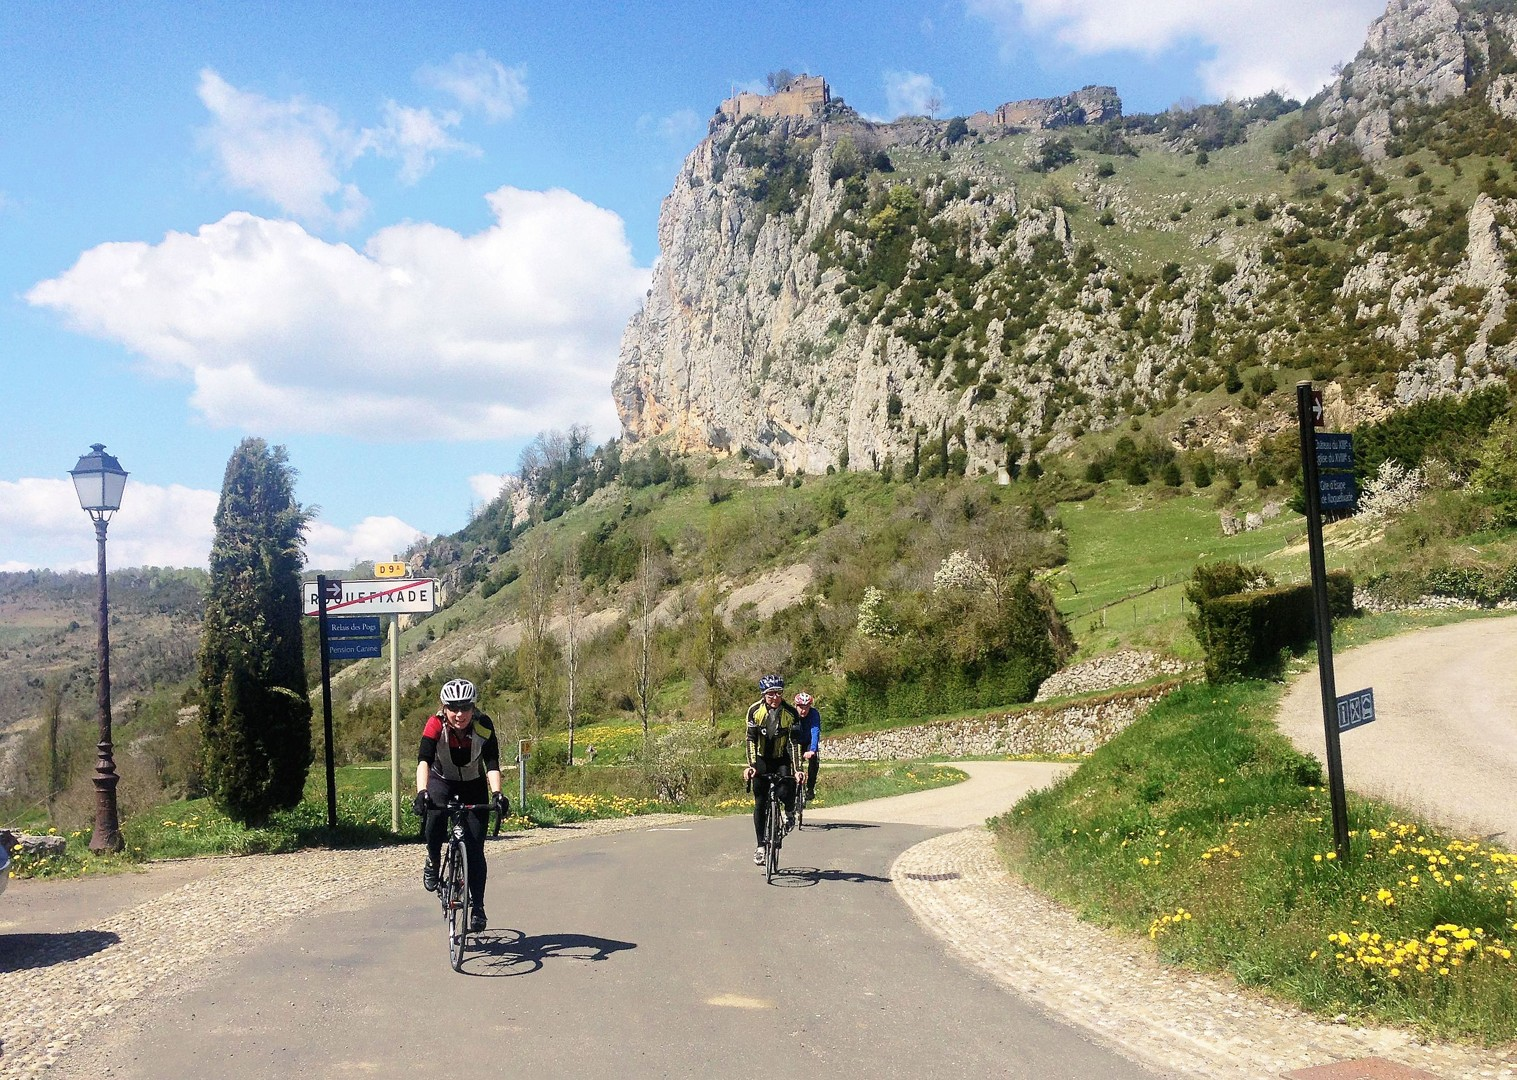 guided-cycling-holiday-pyrenees-france.jpg - France - Pyrenees Fitness Week (Grade 2-3) - Guided Road Cycling Holiday - Road Cycling